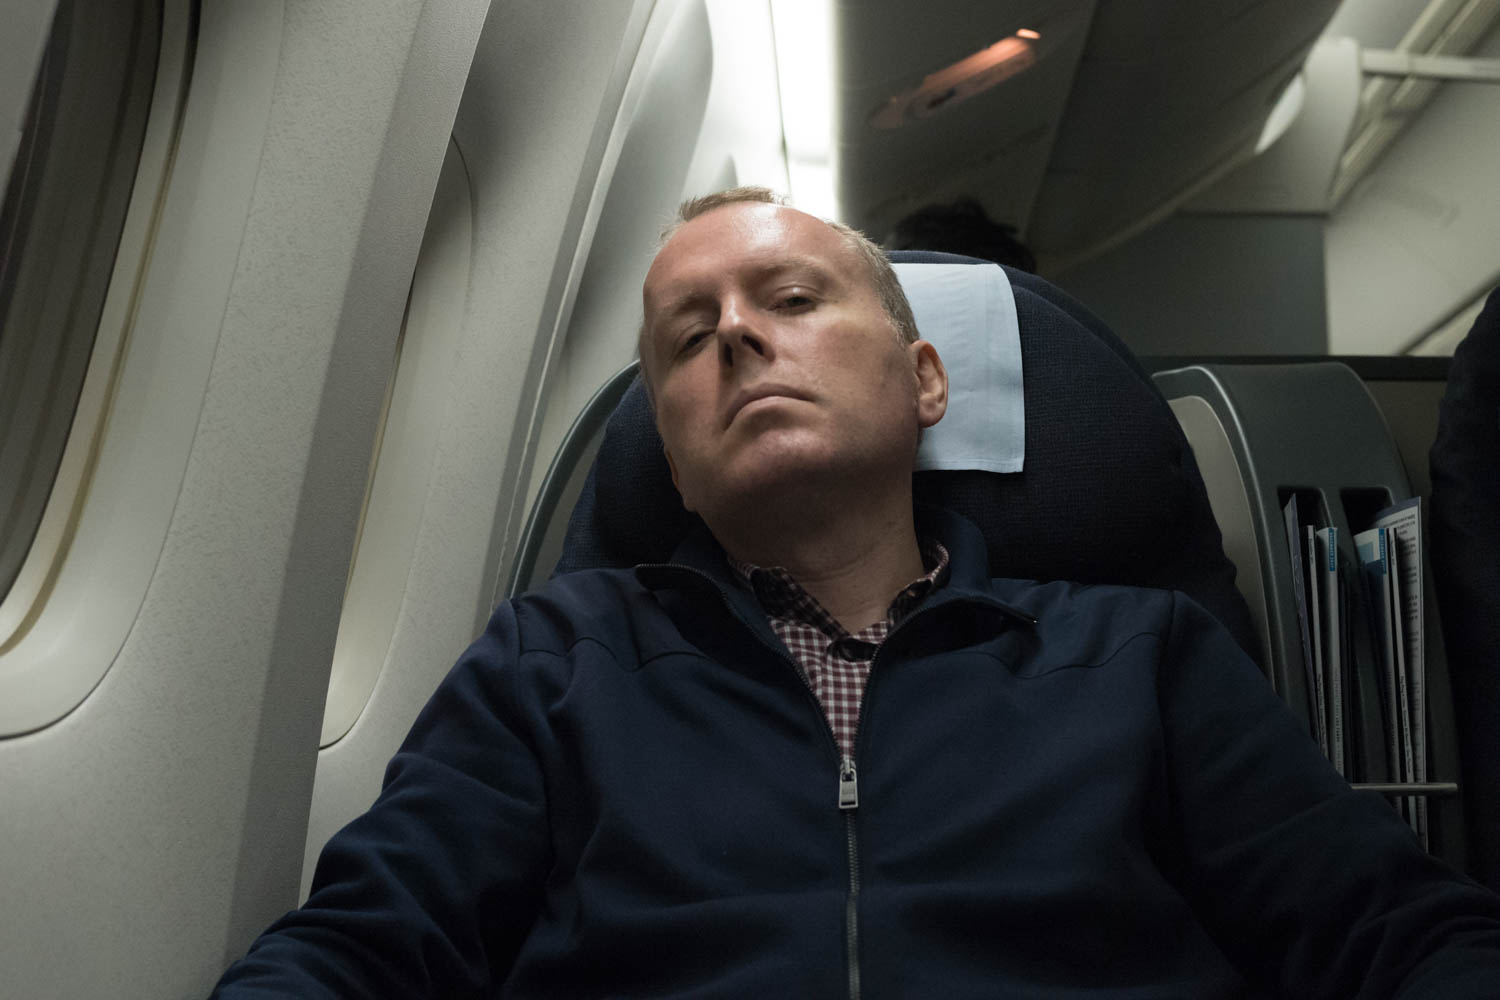 Dave settling in for a long haul